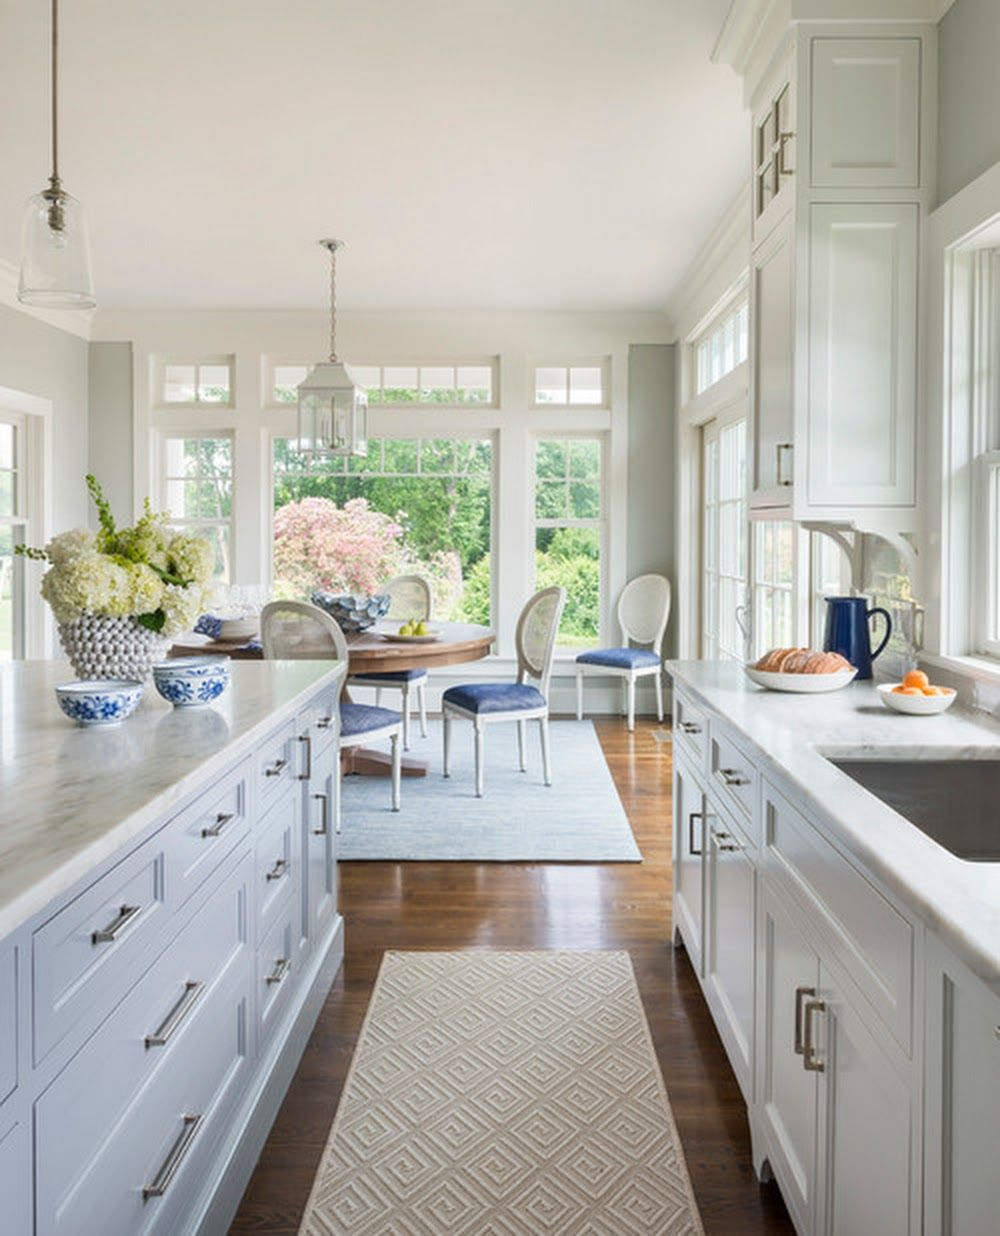 Anything Blue Friday - Week 116 - The Dedicated House | Kitchens ...